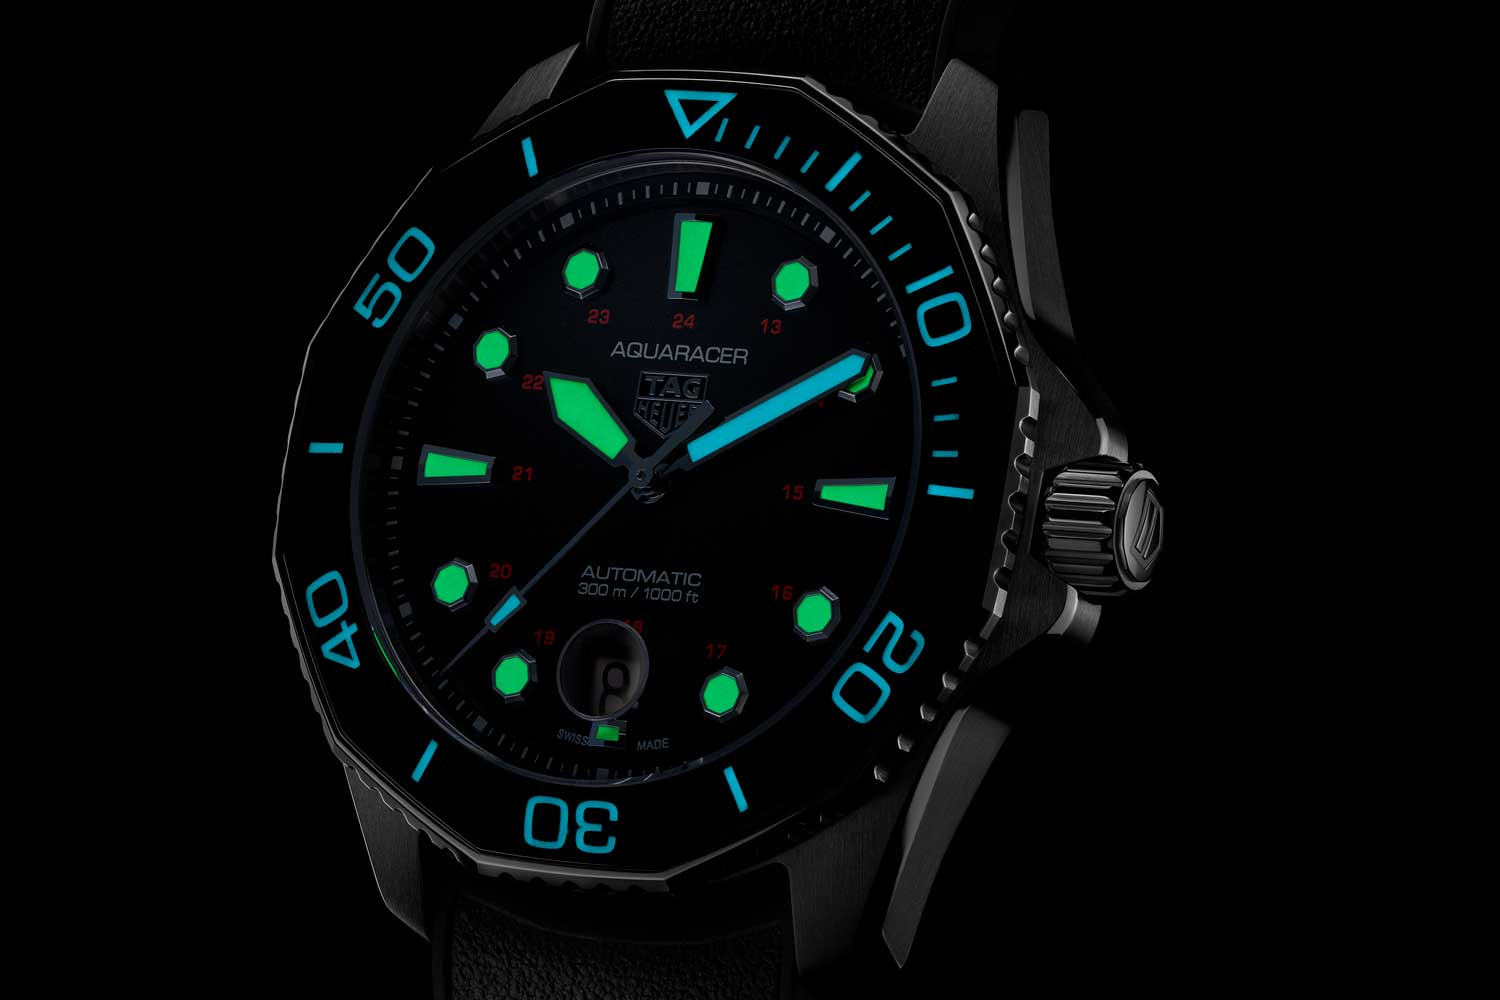 While the hour hand and the indexes on the watch glow green,the minute hand, seconds hand and the inverted triangle on the bezel that represents the start of elapsed dive time glow blue.